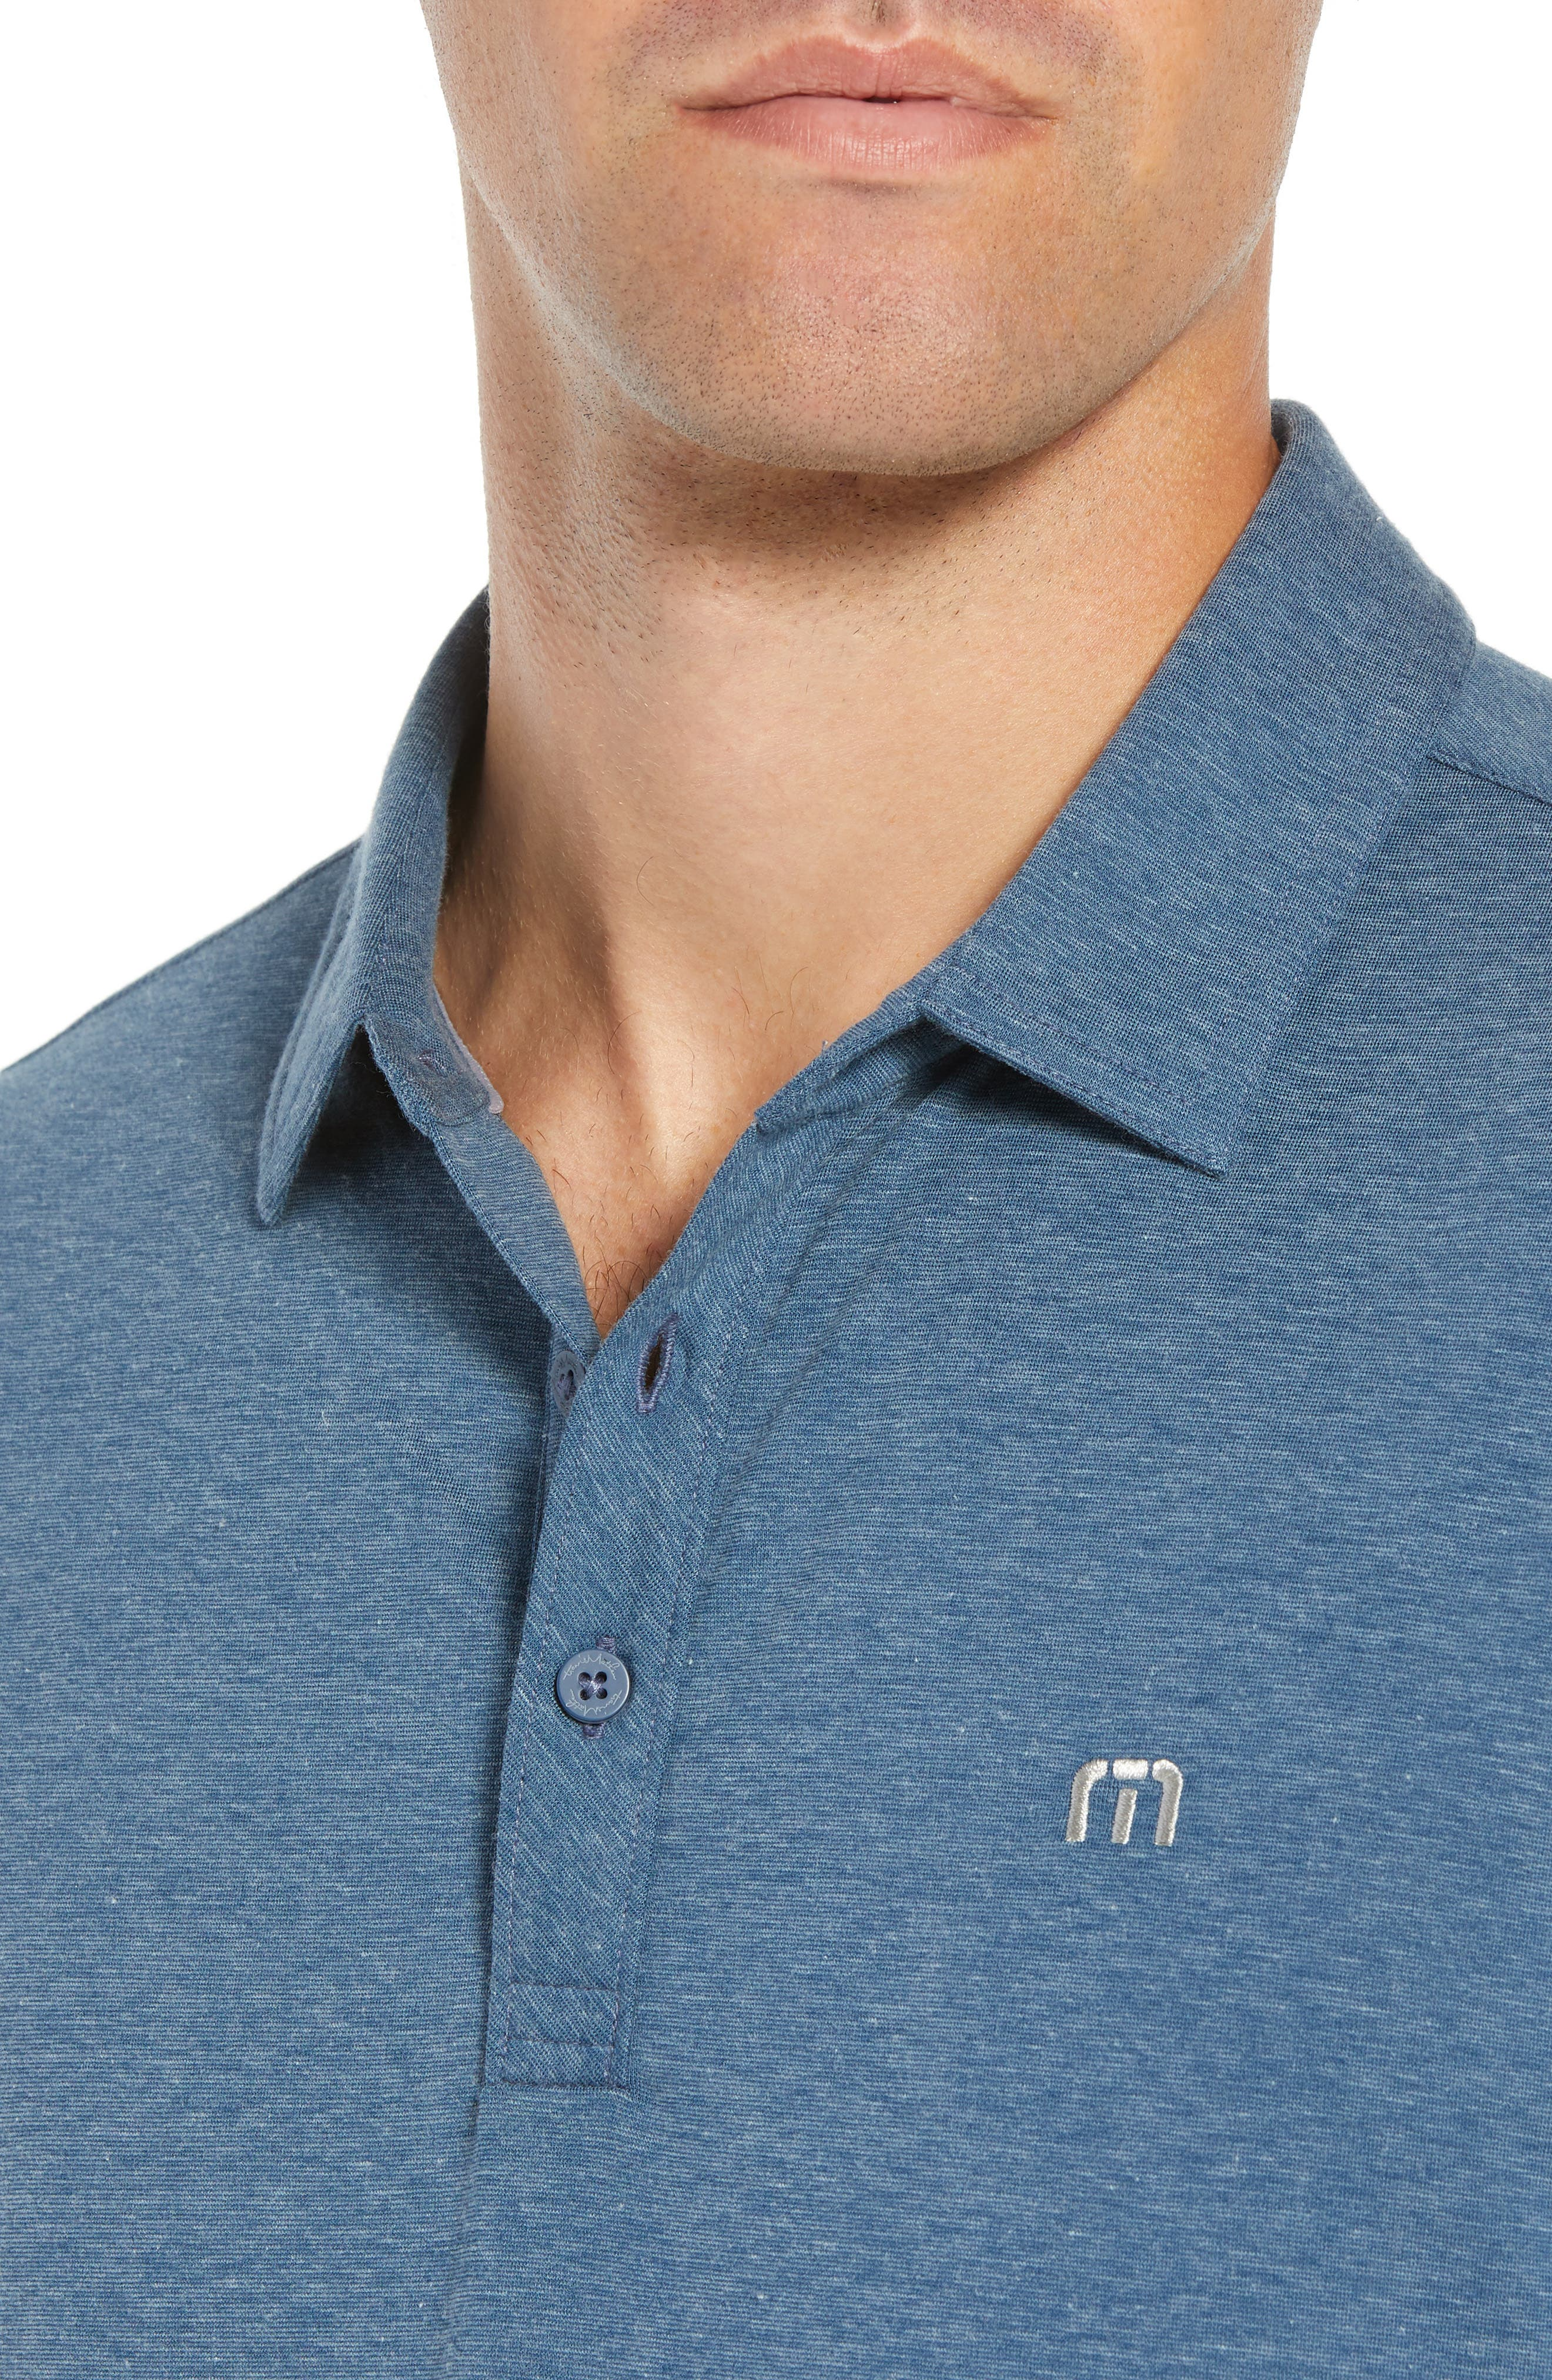 Backup Plan Regular Fit Polo,                             Alternate thumbnail 4, color,                             TRADEWINDS/ BLUE WING TEAL